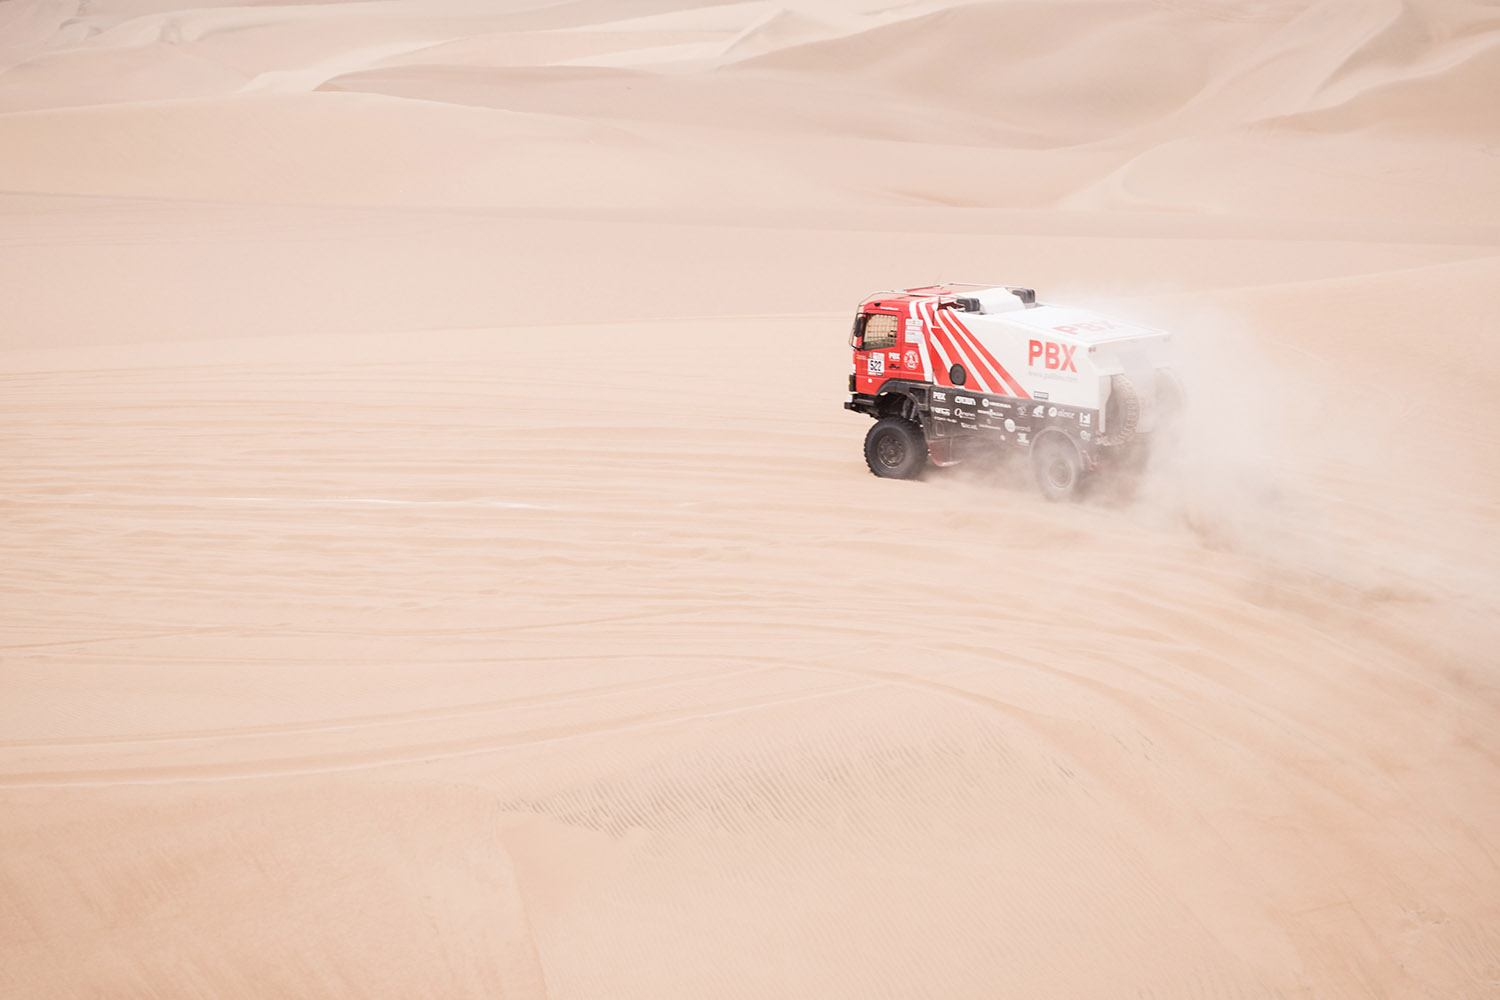 522-2018-01-07-PBX DAKAR 2018 TEAM (2)